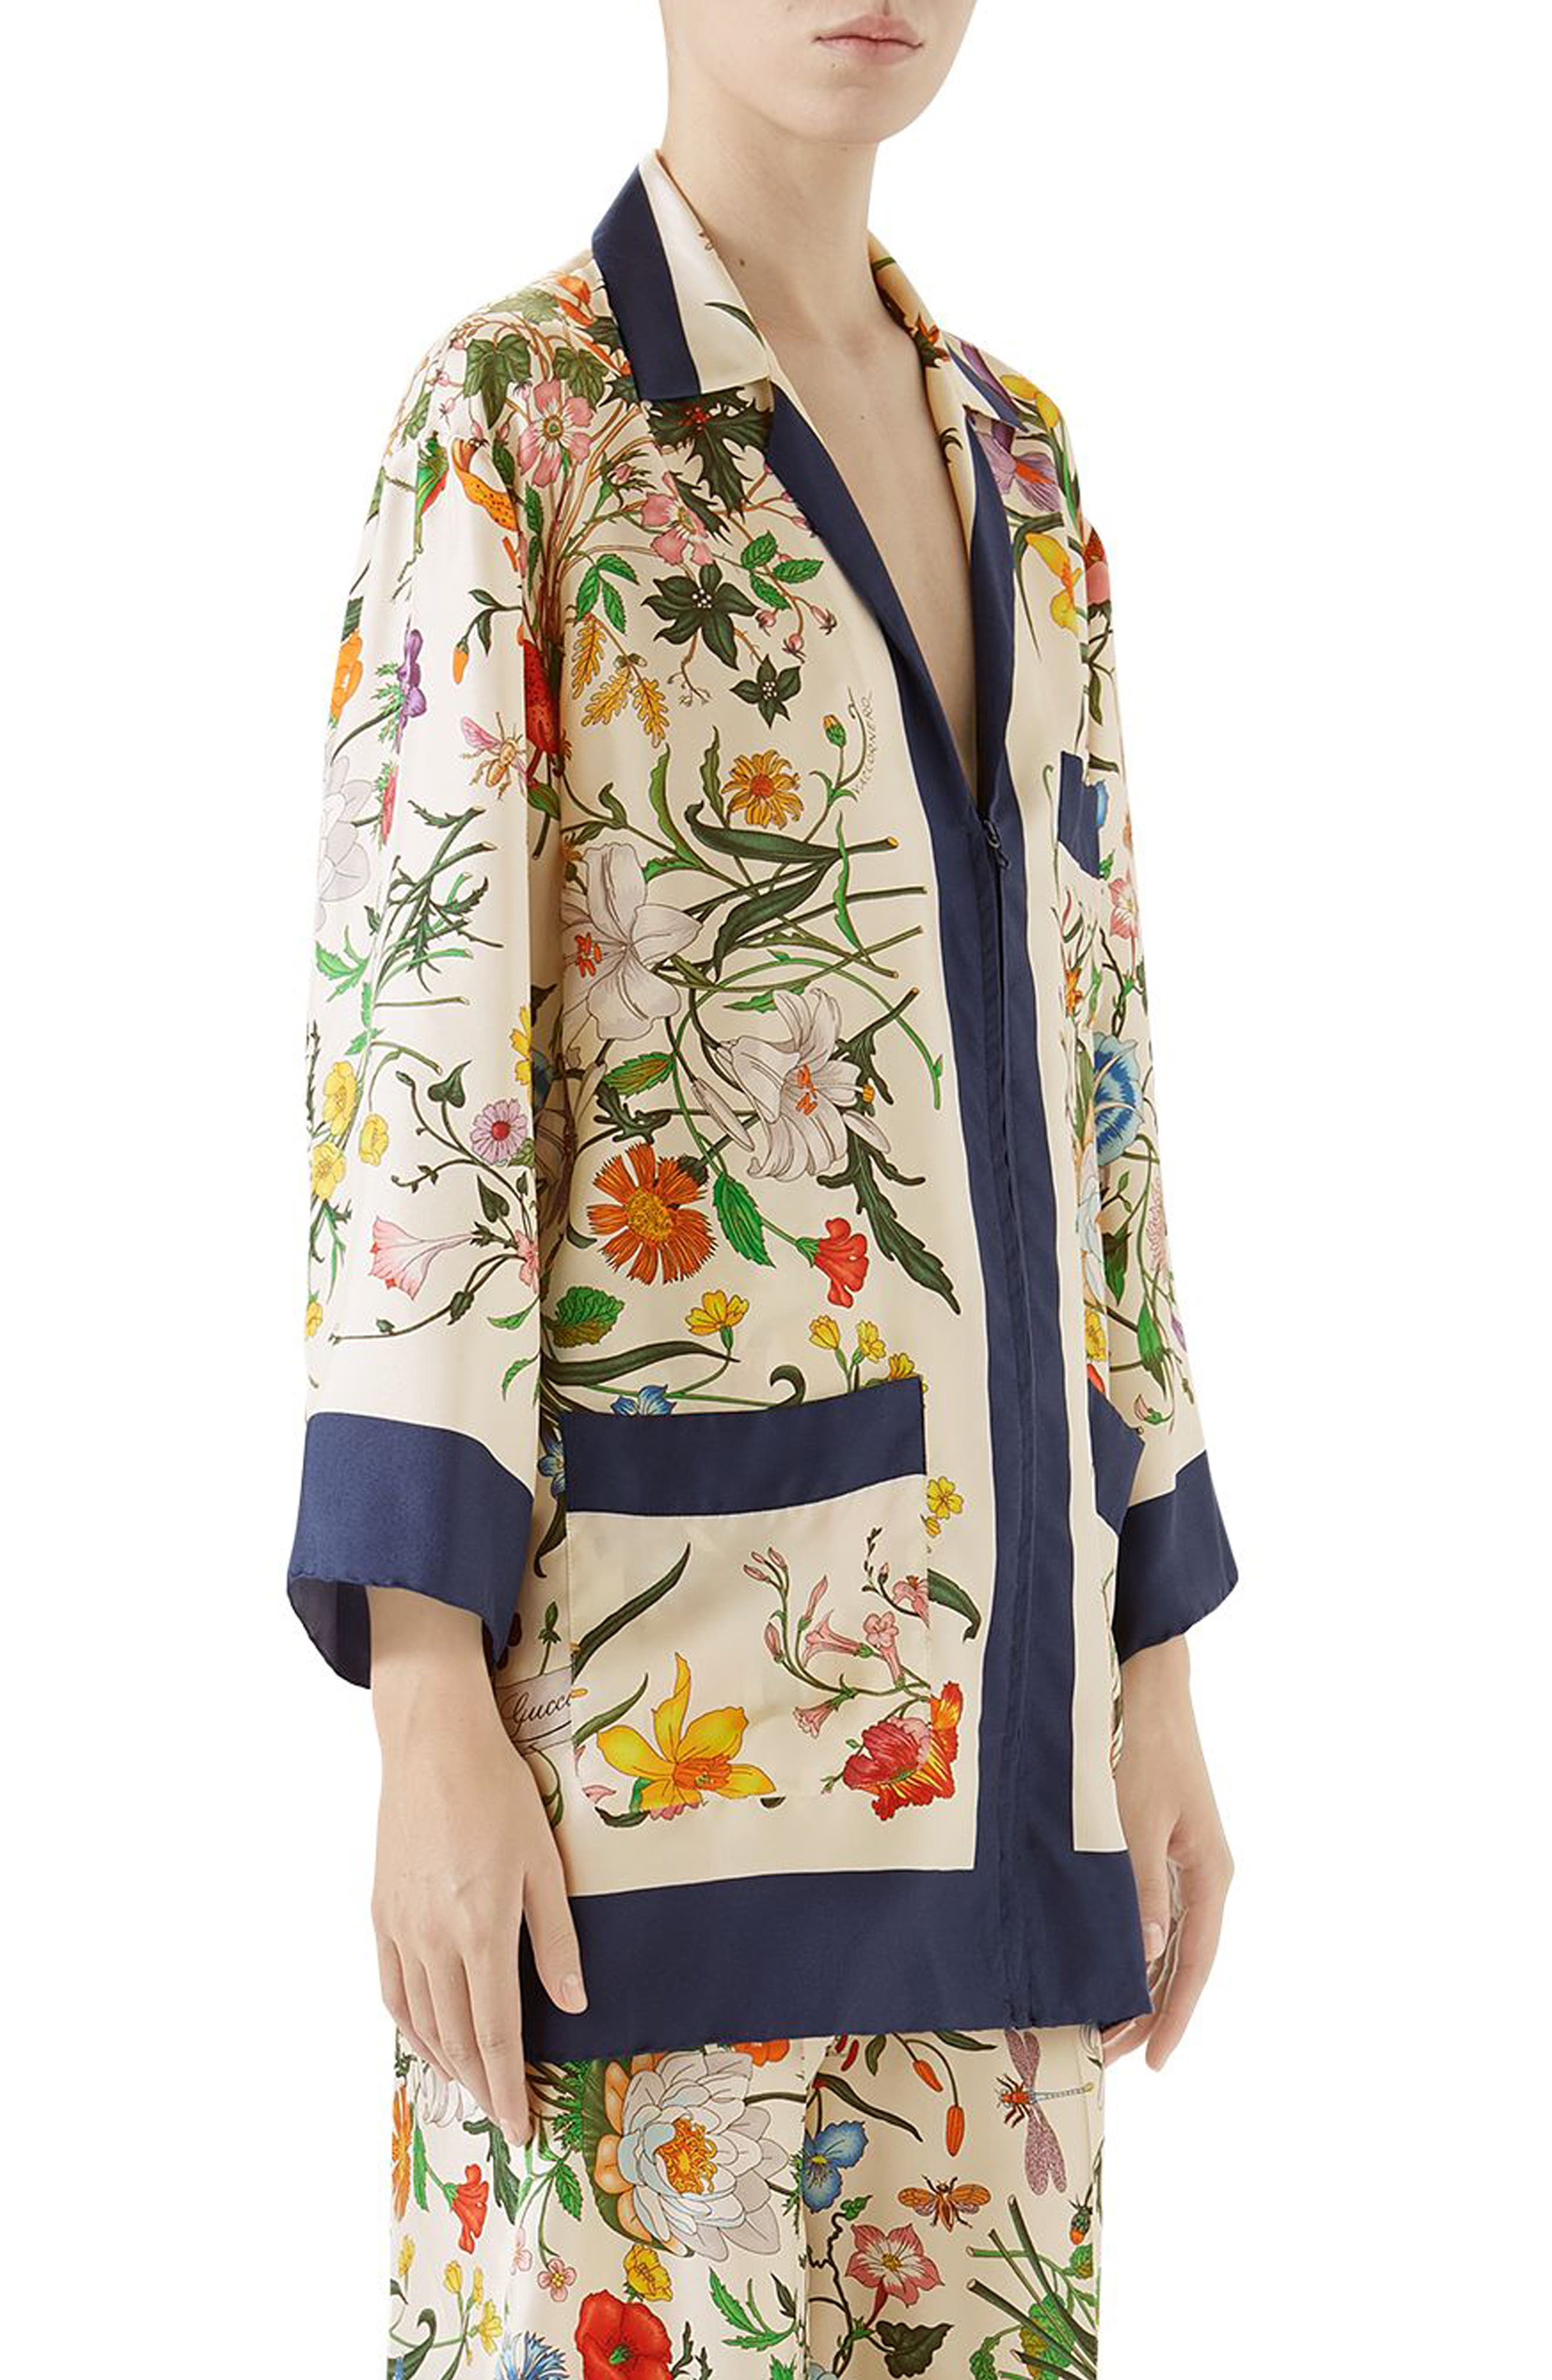 Floral Print Silk Foulard Shirt,                             Alternate thumbnail 3, color,                             BLUE/ IVORY PRINT